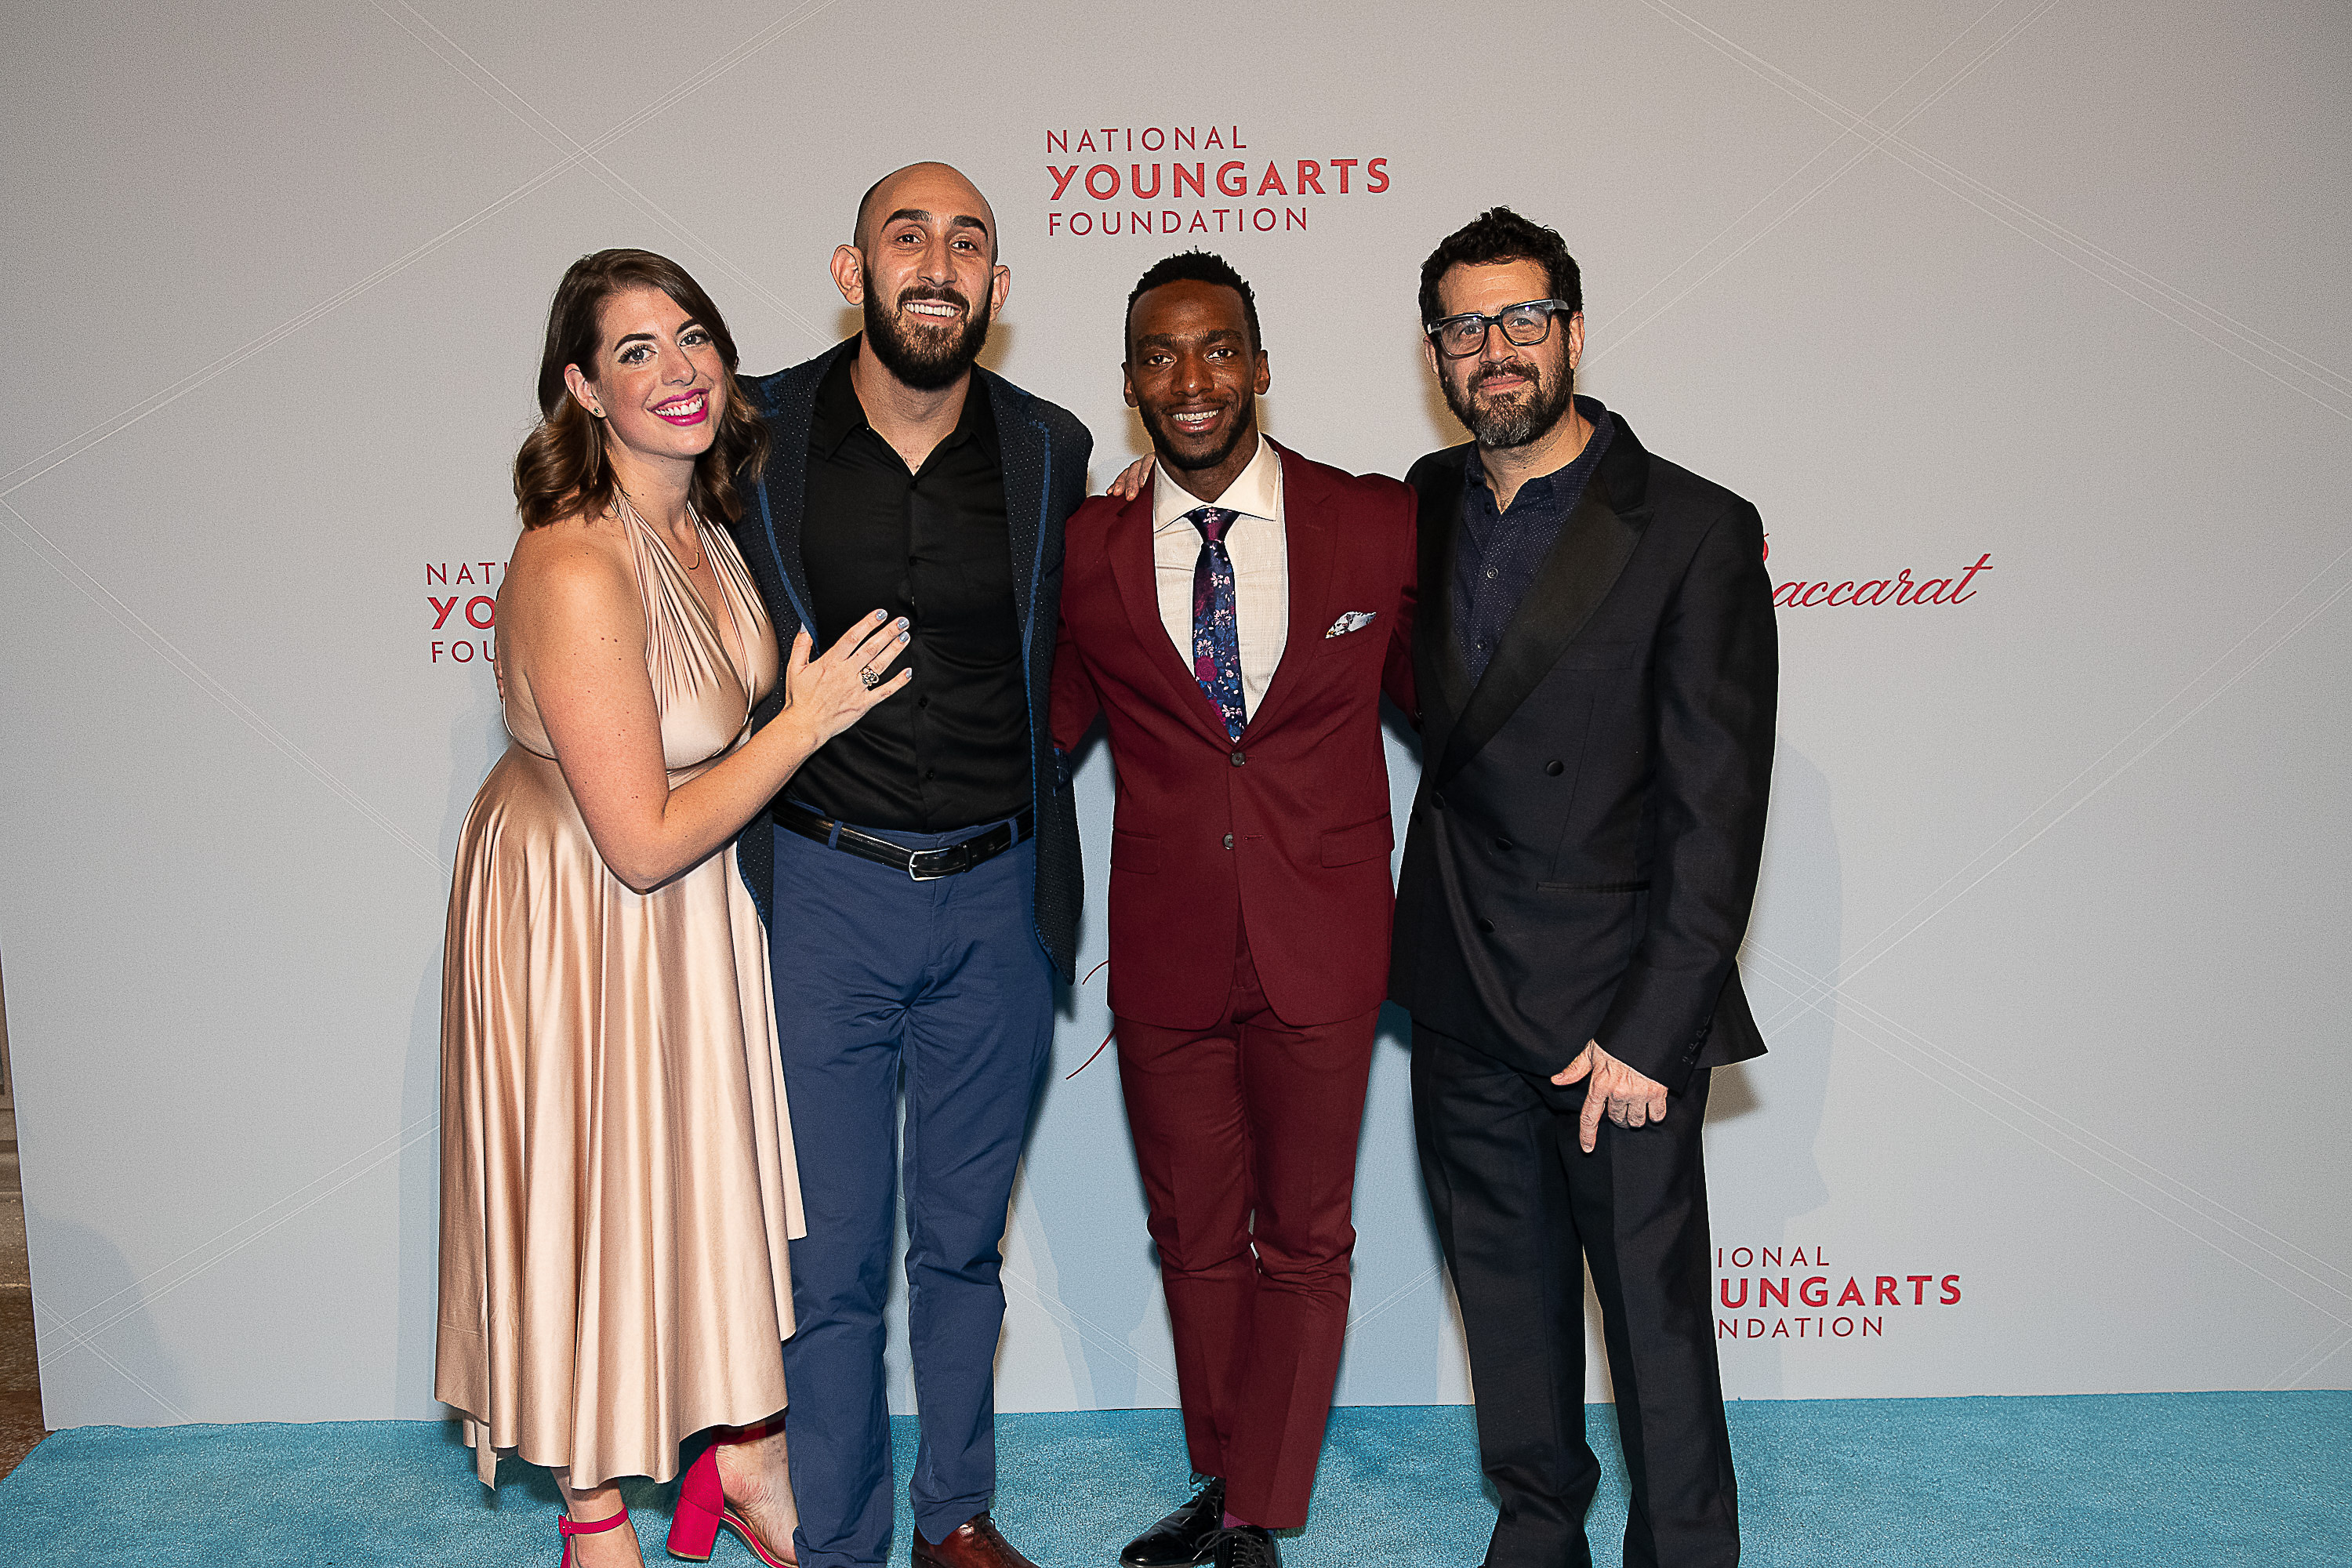 20190416_YoungArts-GALA_ChristopherDuggan_284